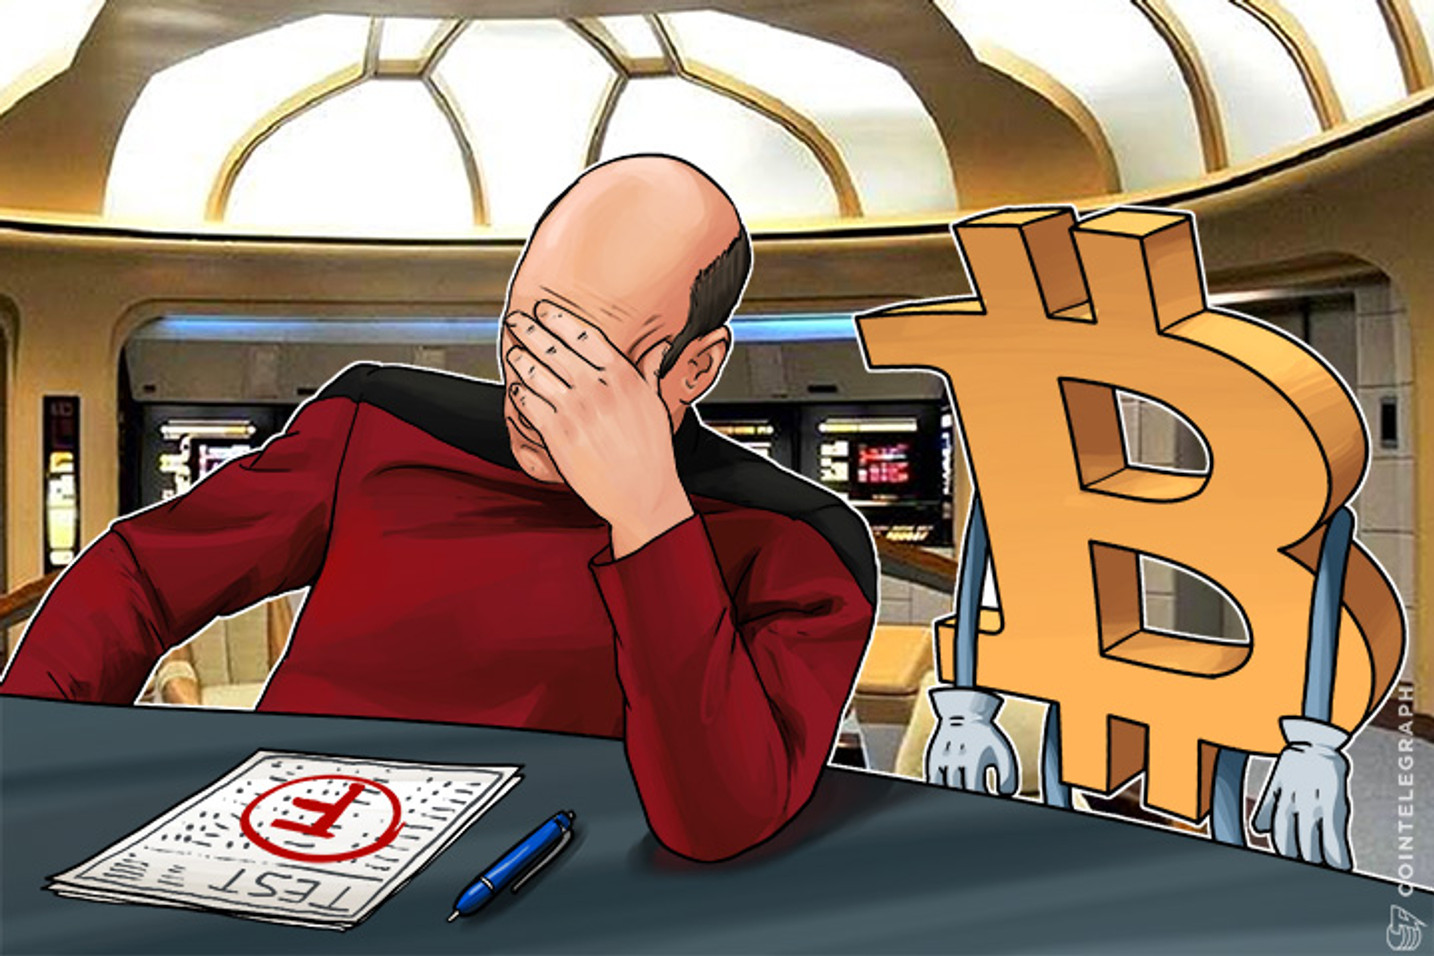 Top 10 Bitcoin Fails: From Gambling, Ponzi to Mother of All Frauds